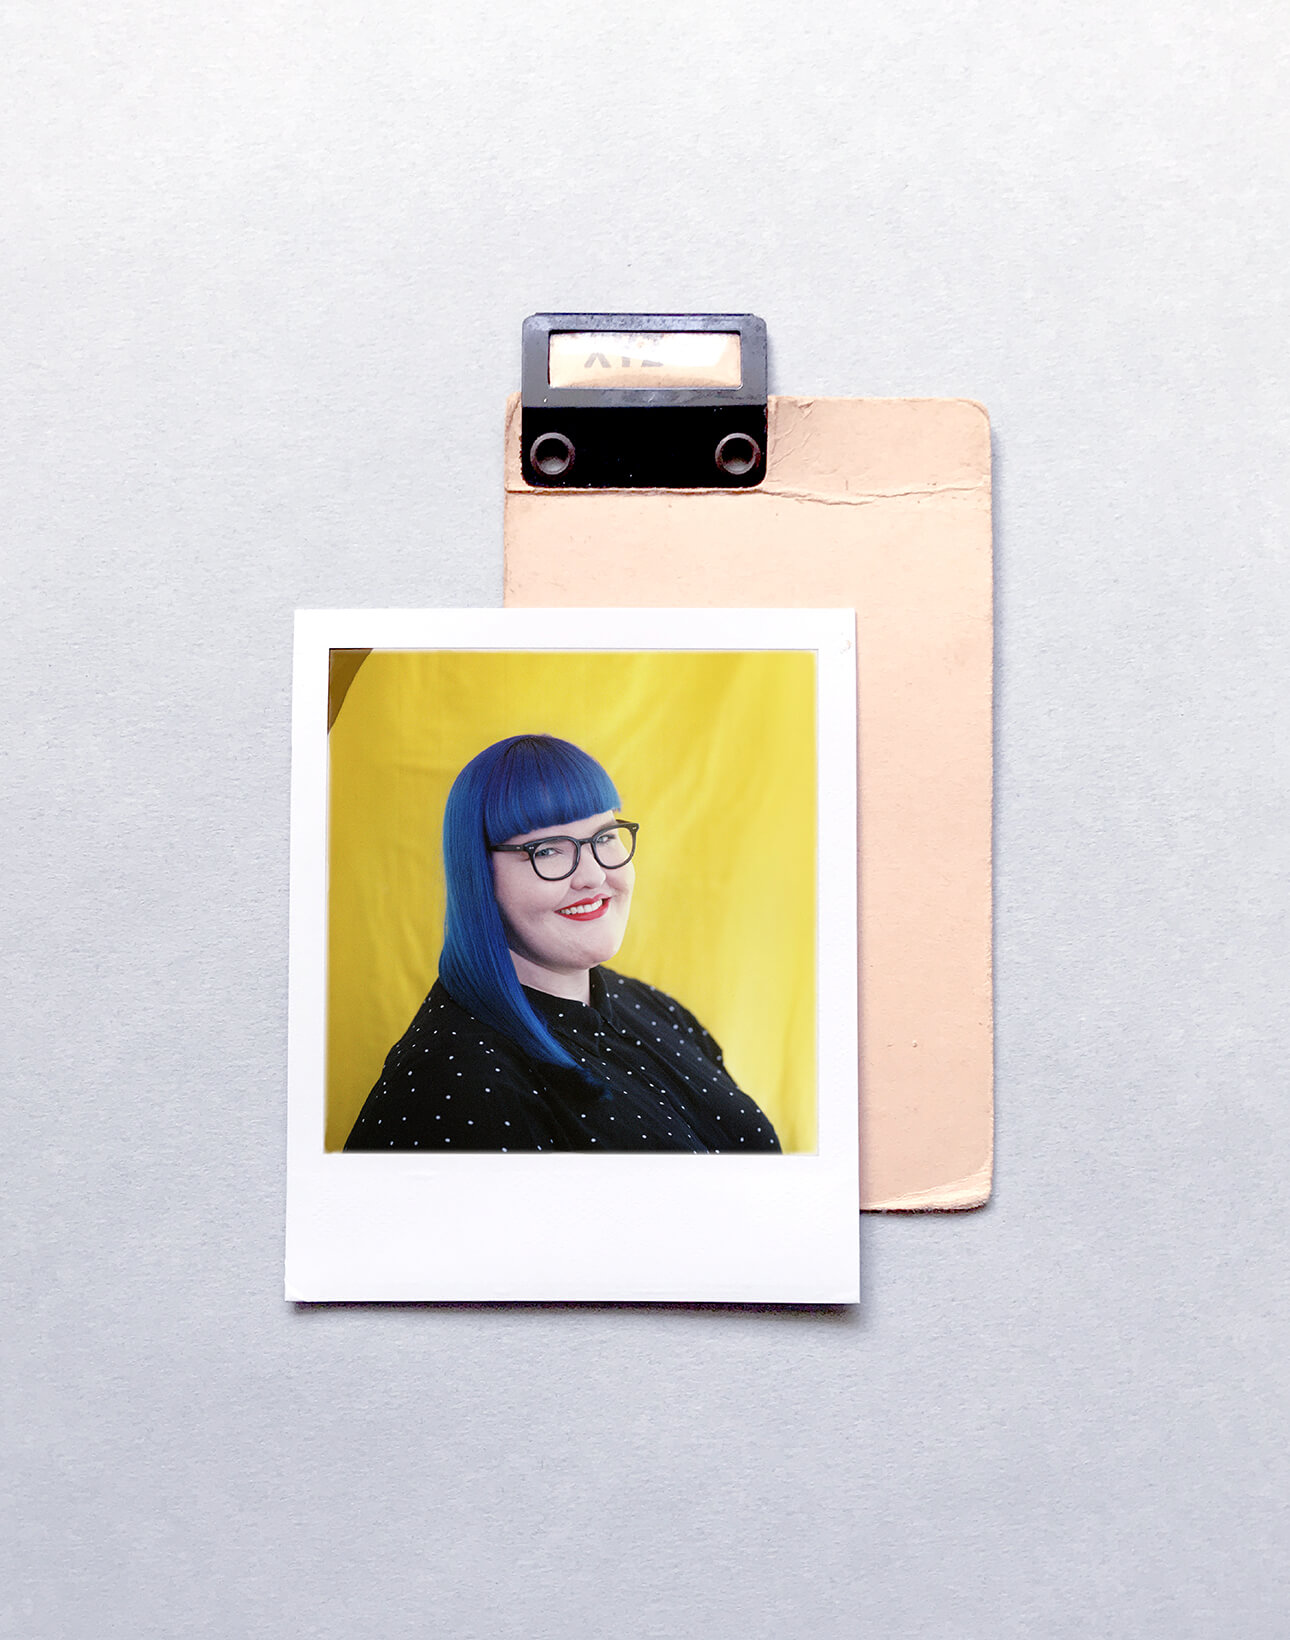 Polaroid photo of designer laura from obscurio and co. She has bright blue hair and is in front of a yellow background